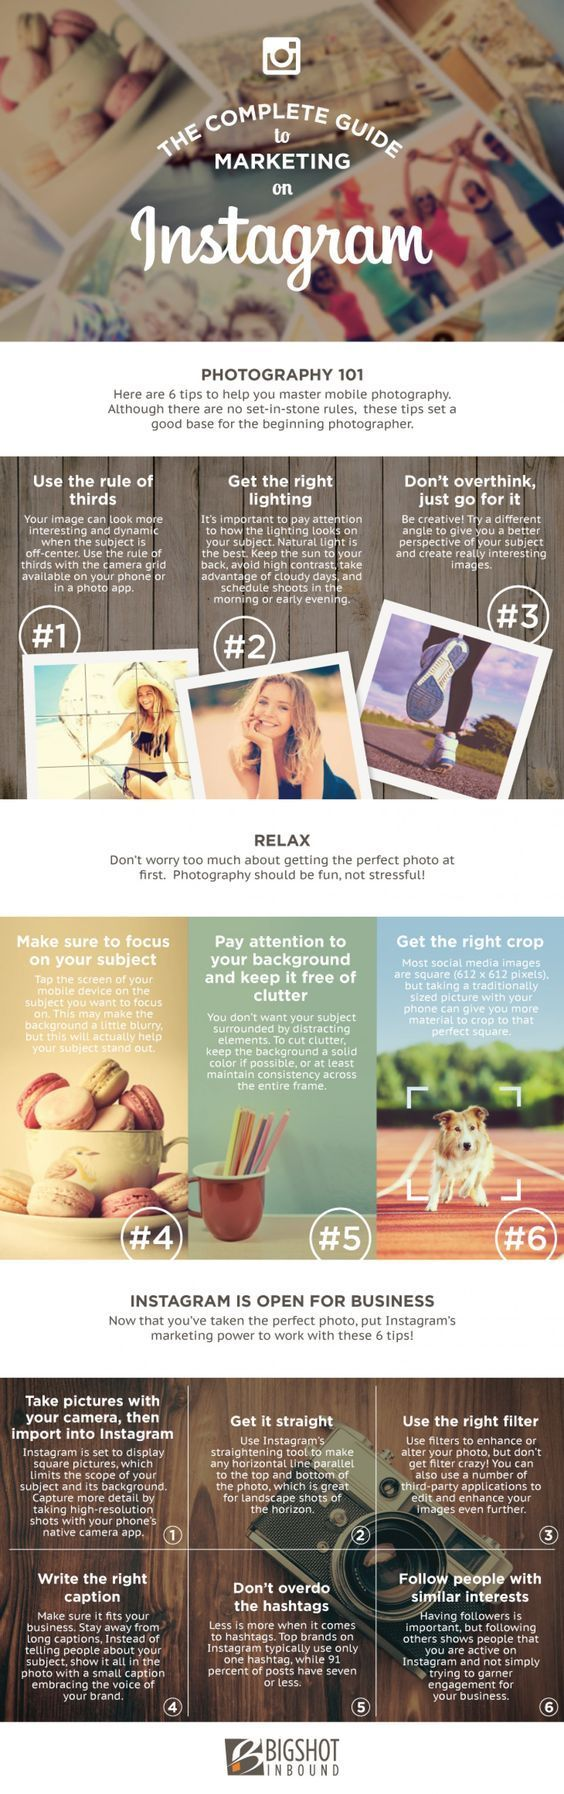 The Complete Guide to Marketing on Instagram. #social #media